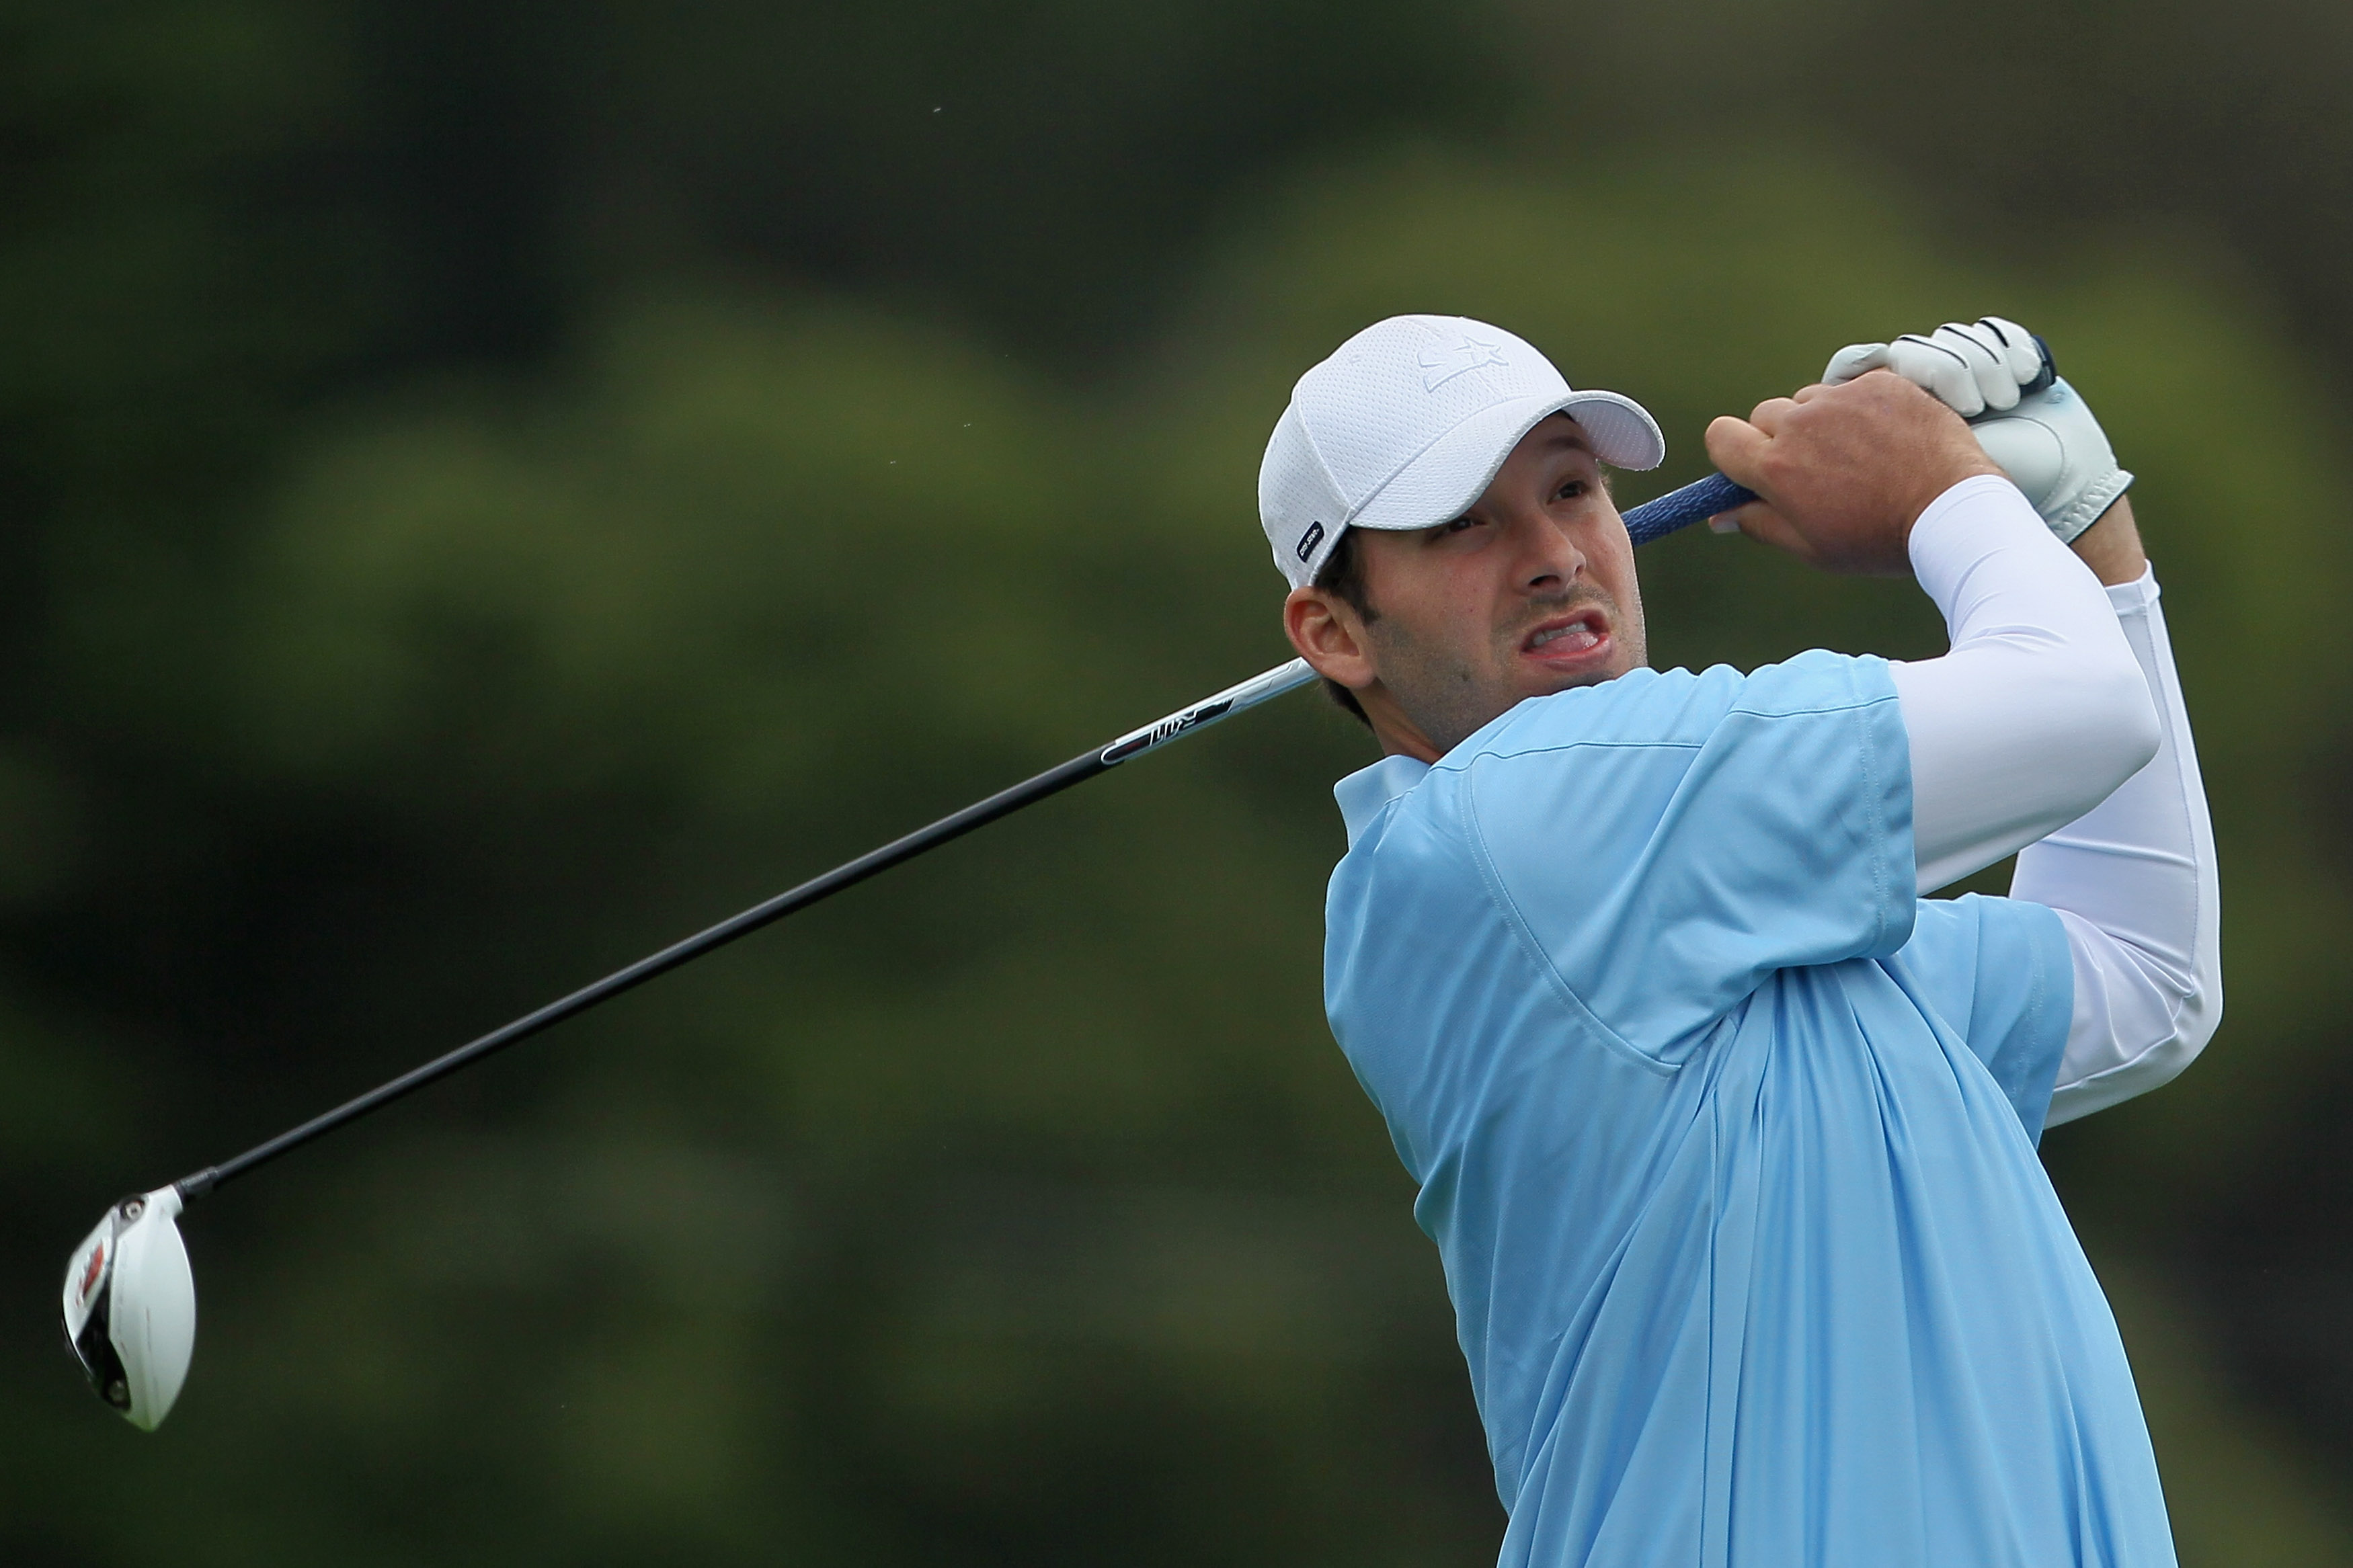 Tony Romo torneo Golf PGA regreso